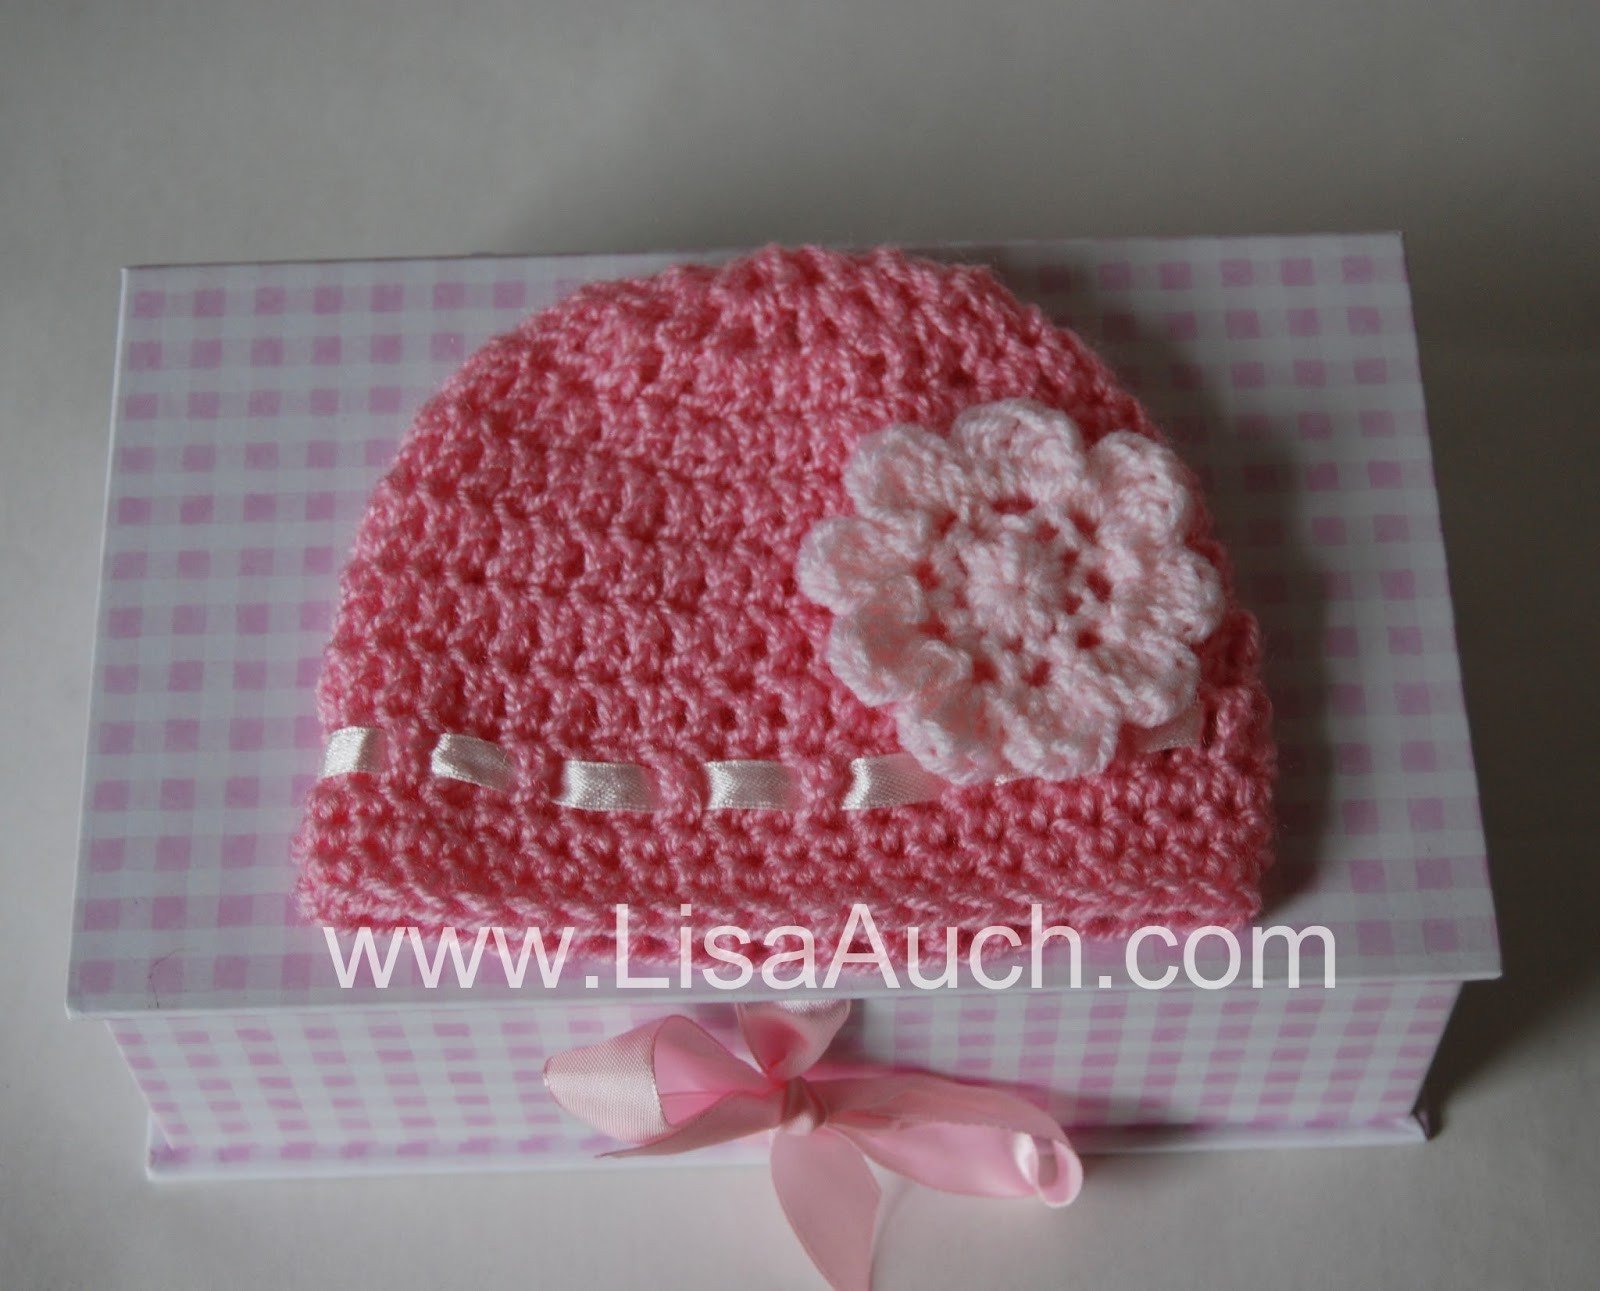 Free Crochet Patterns For Baby And Toddler Hats : Free Crochet Baby Hat Pattern